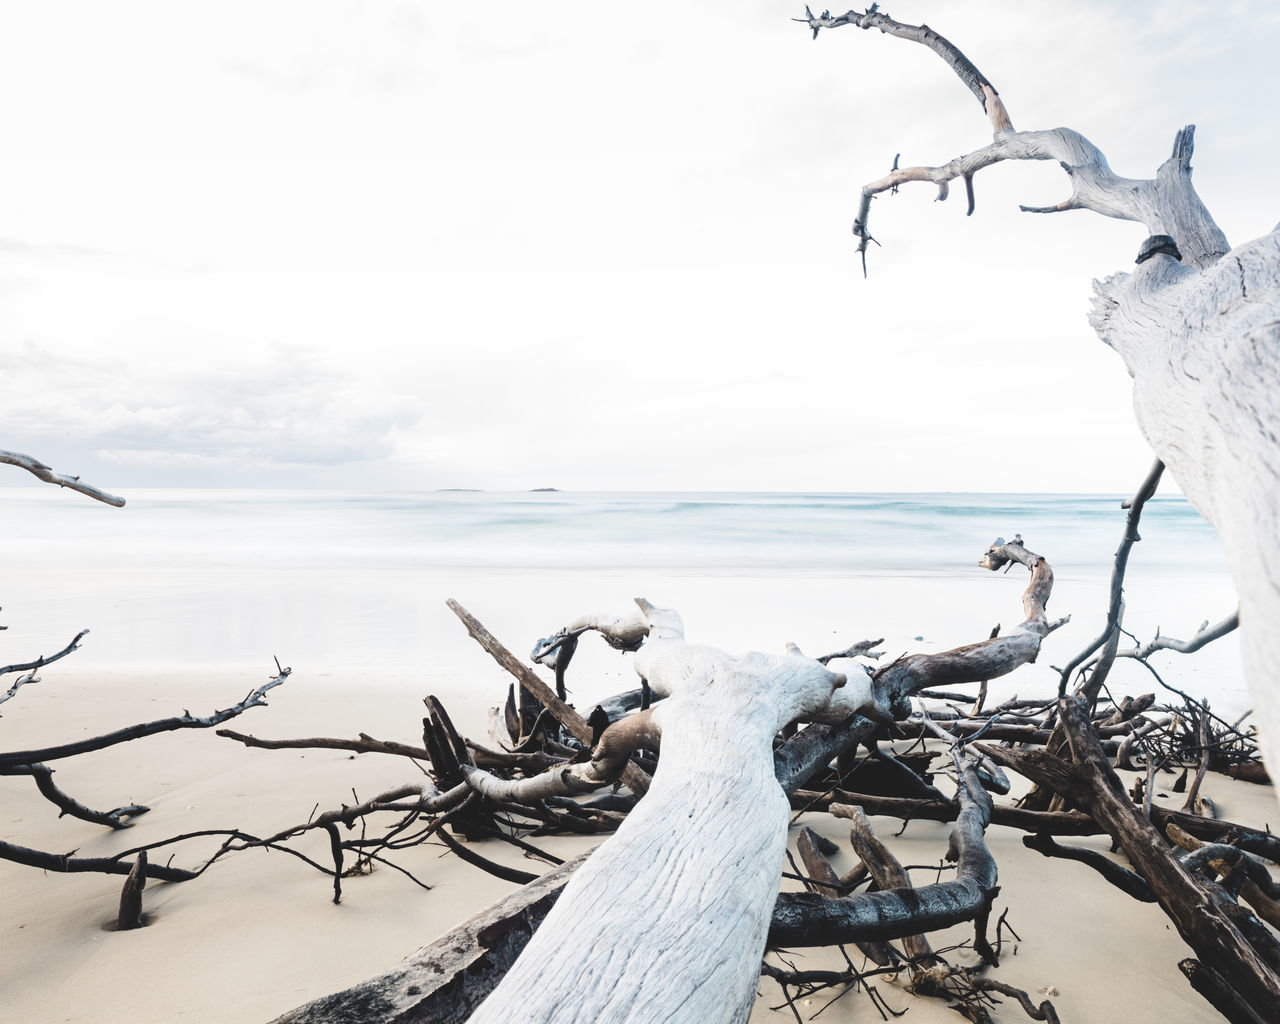 nature, sea, horizon over water, day, outdoors, sky, beauty in nature, scenics, tranquility, dead plant, no people, tranquil scene, dead tree, water, wood - material, branch, beach, bare tree, tree, animal themes, close-up